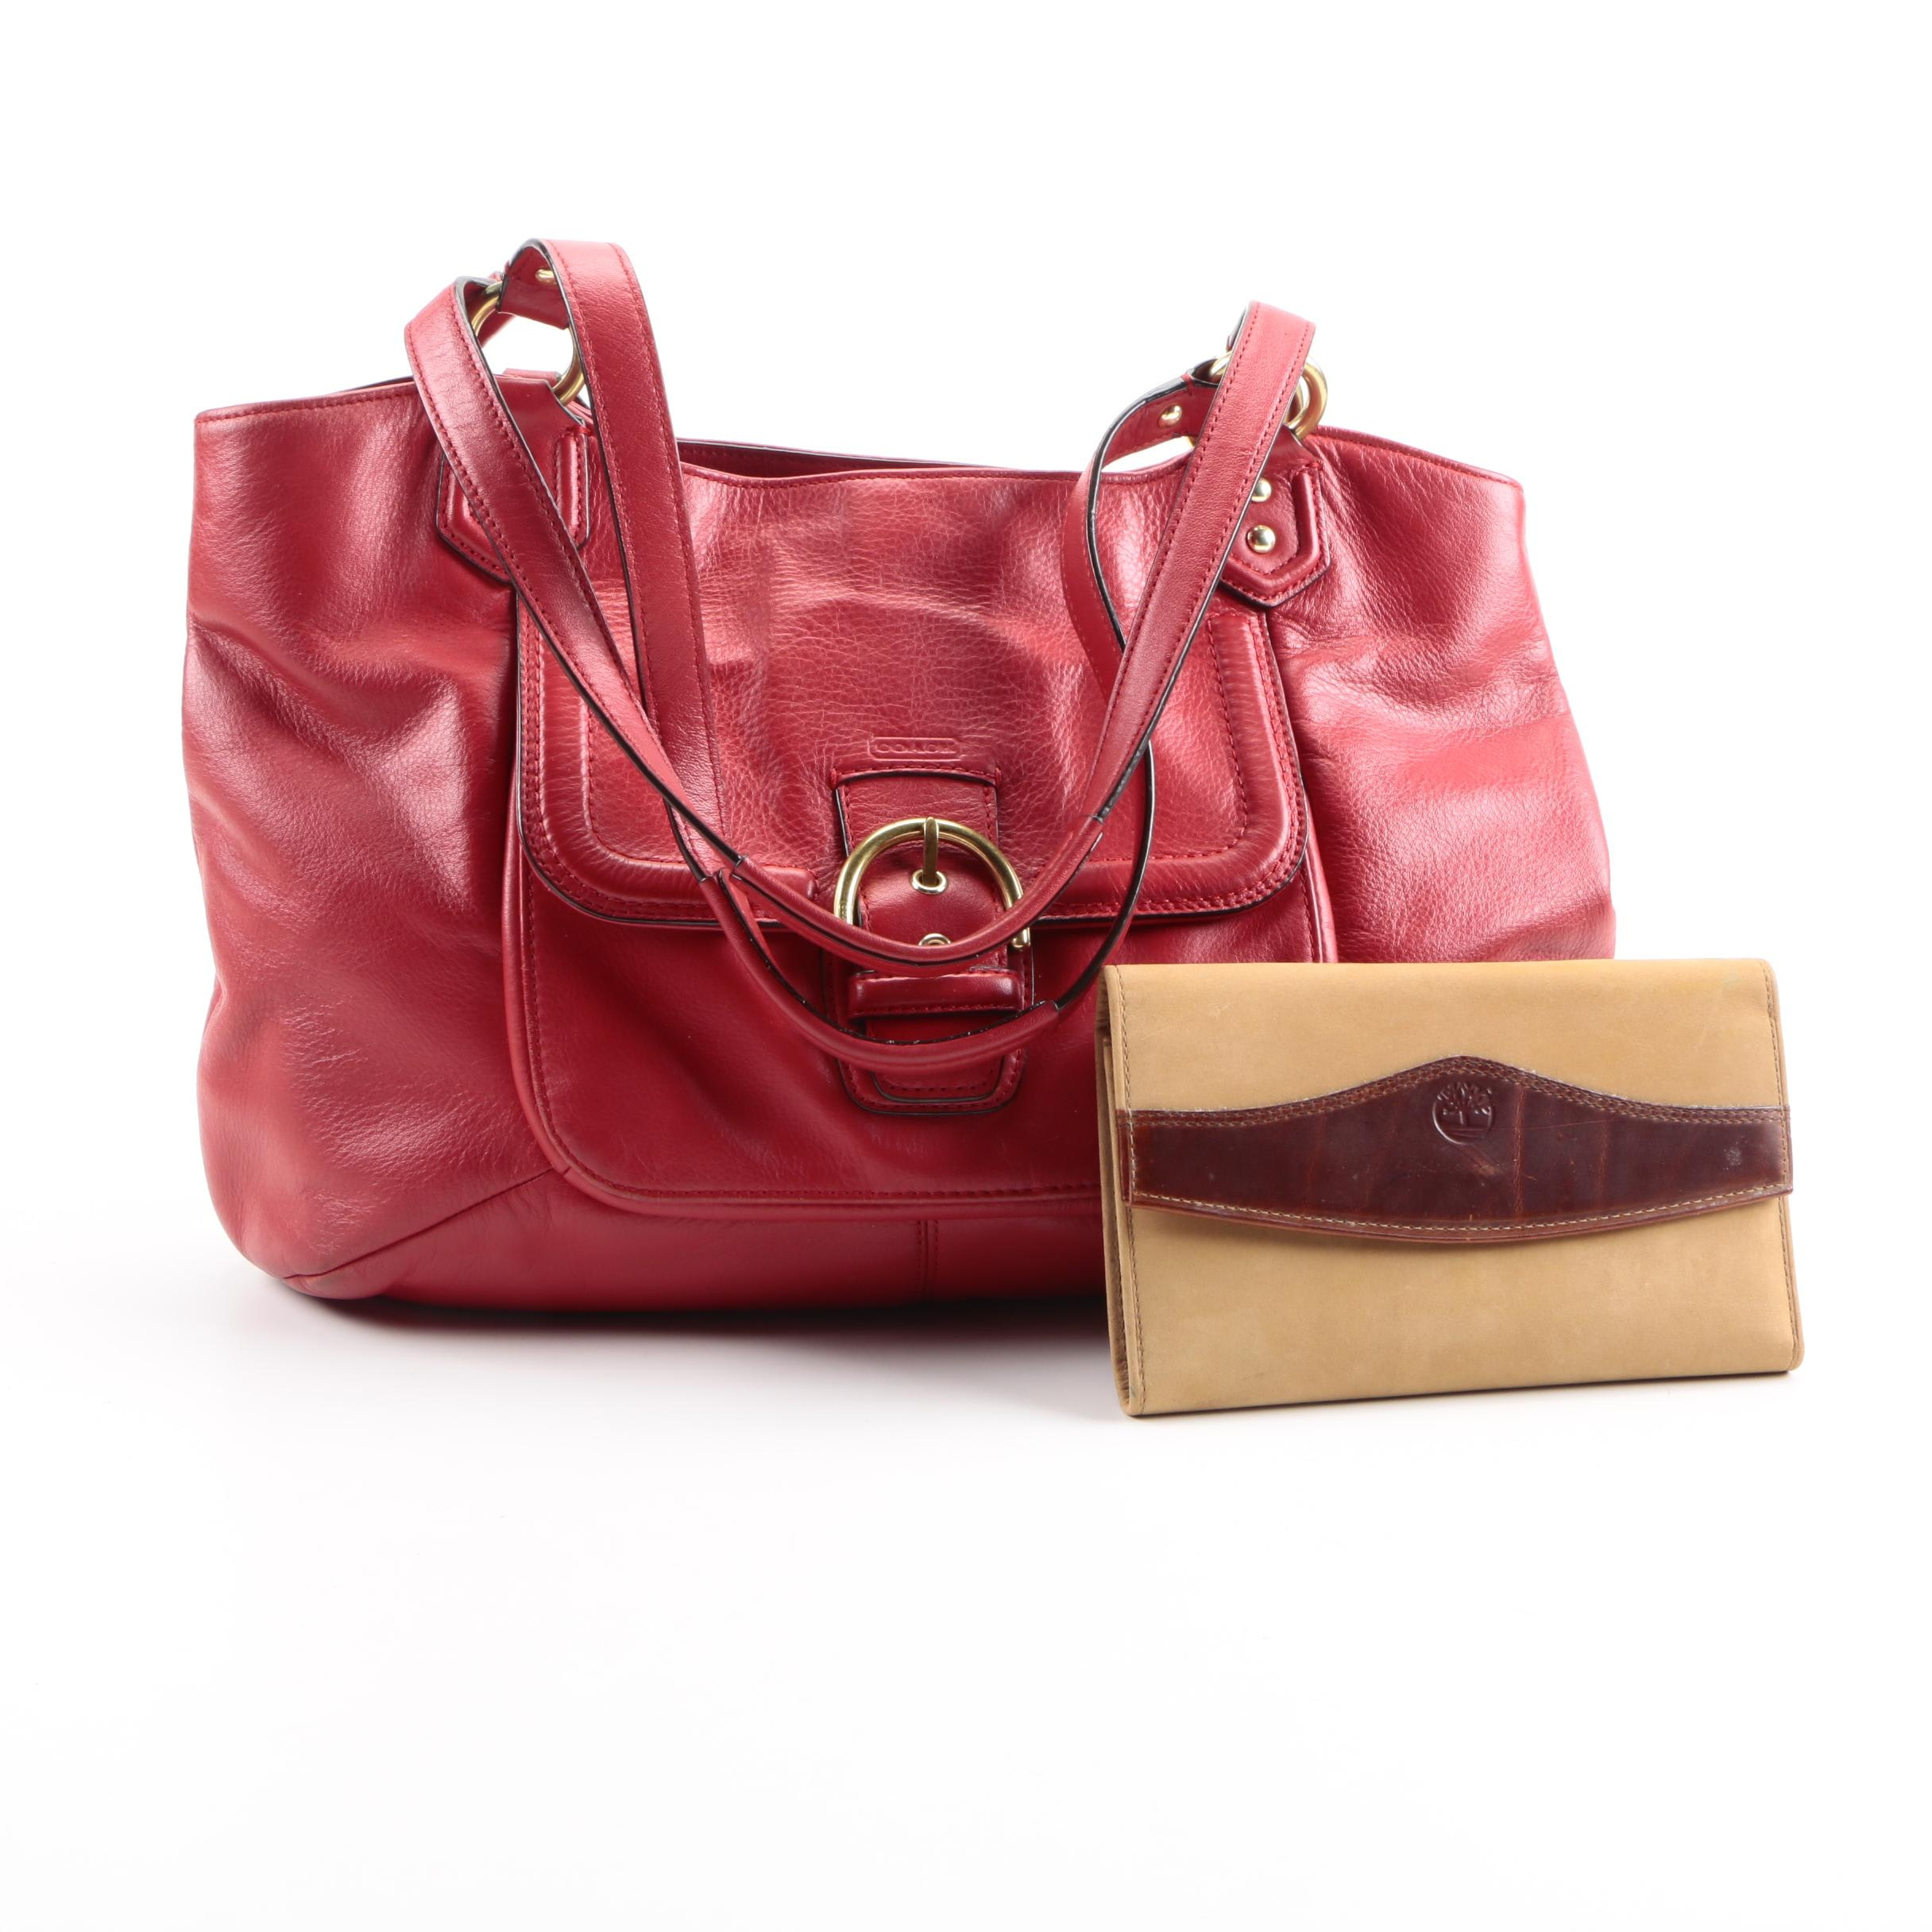 Coach Red Leather Campbell Bag and Timberland Suede Wallet